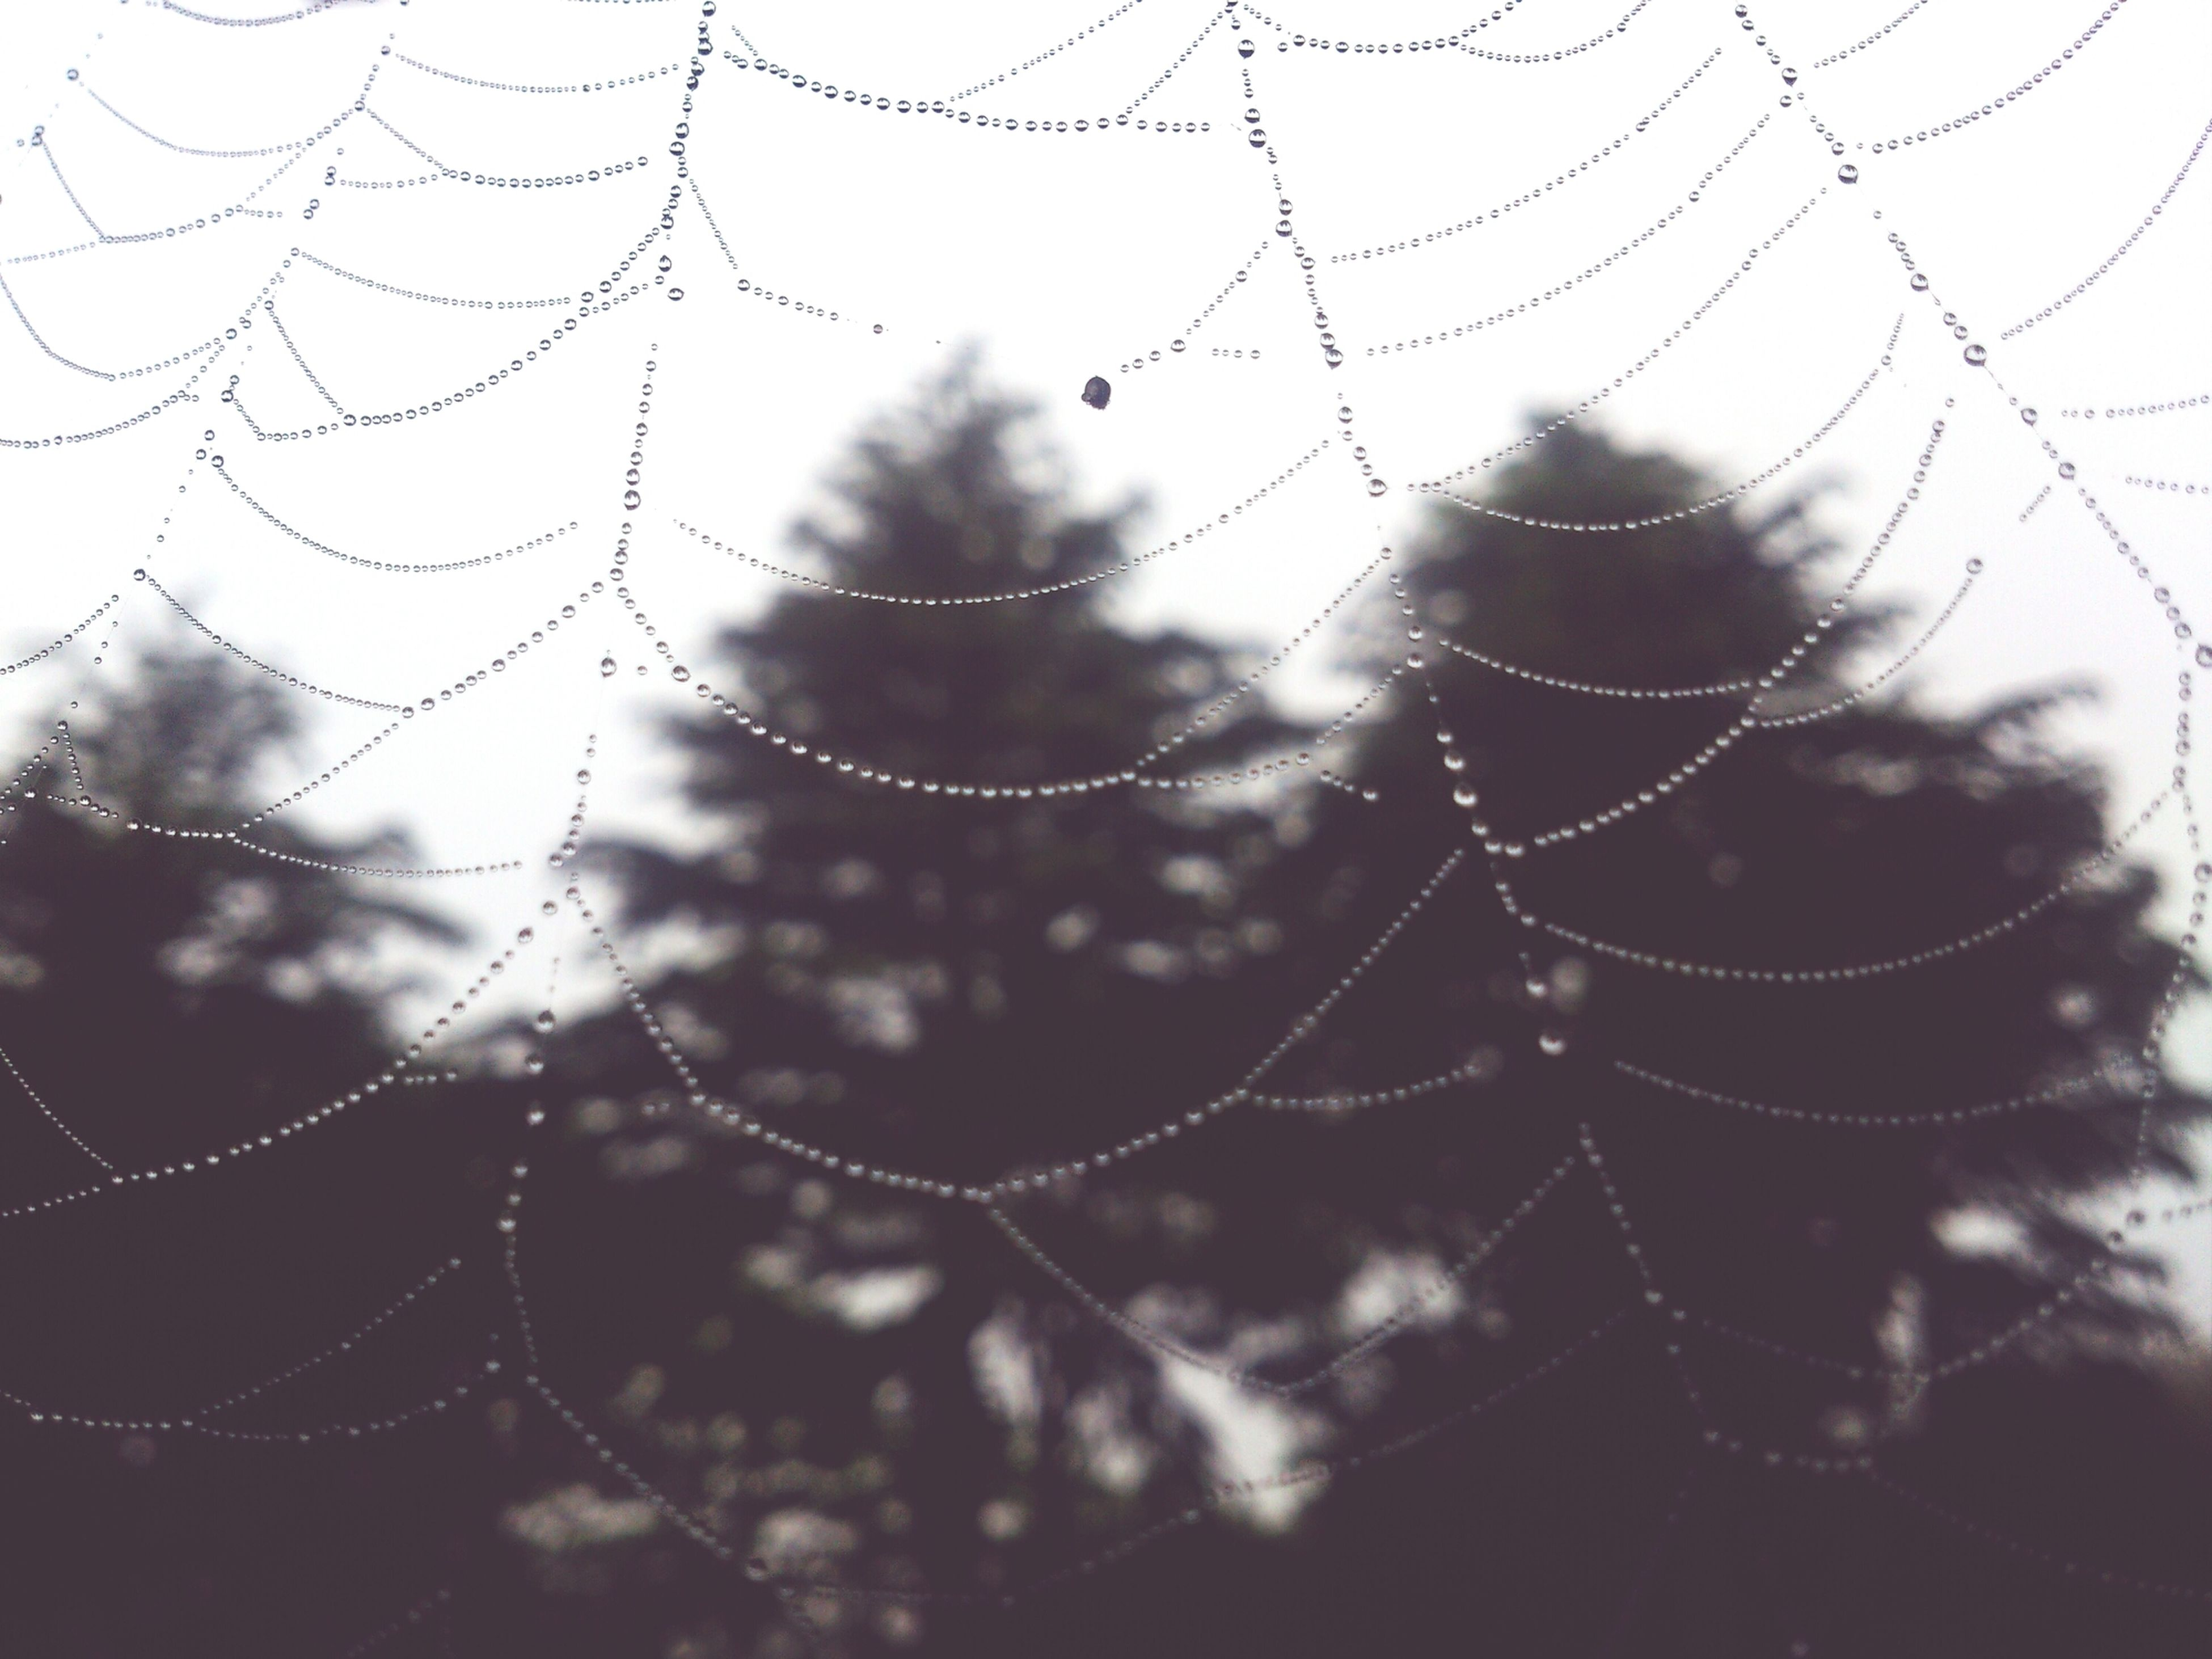 drop, water, wet, spider web, focus on foreground, close-up, fragility, rain, weather, dew, raindrop, nature, season, beauty in nature, natural pattern, purity, water drop, droplet, day, outdoors